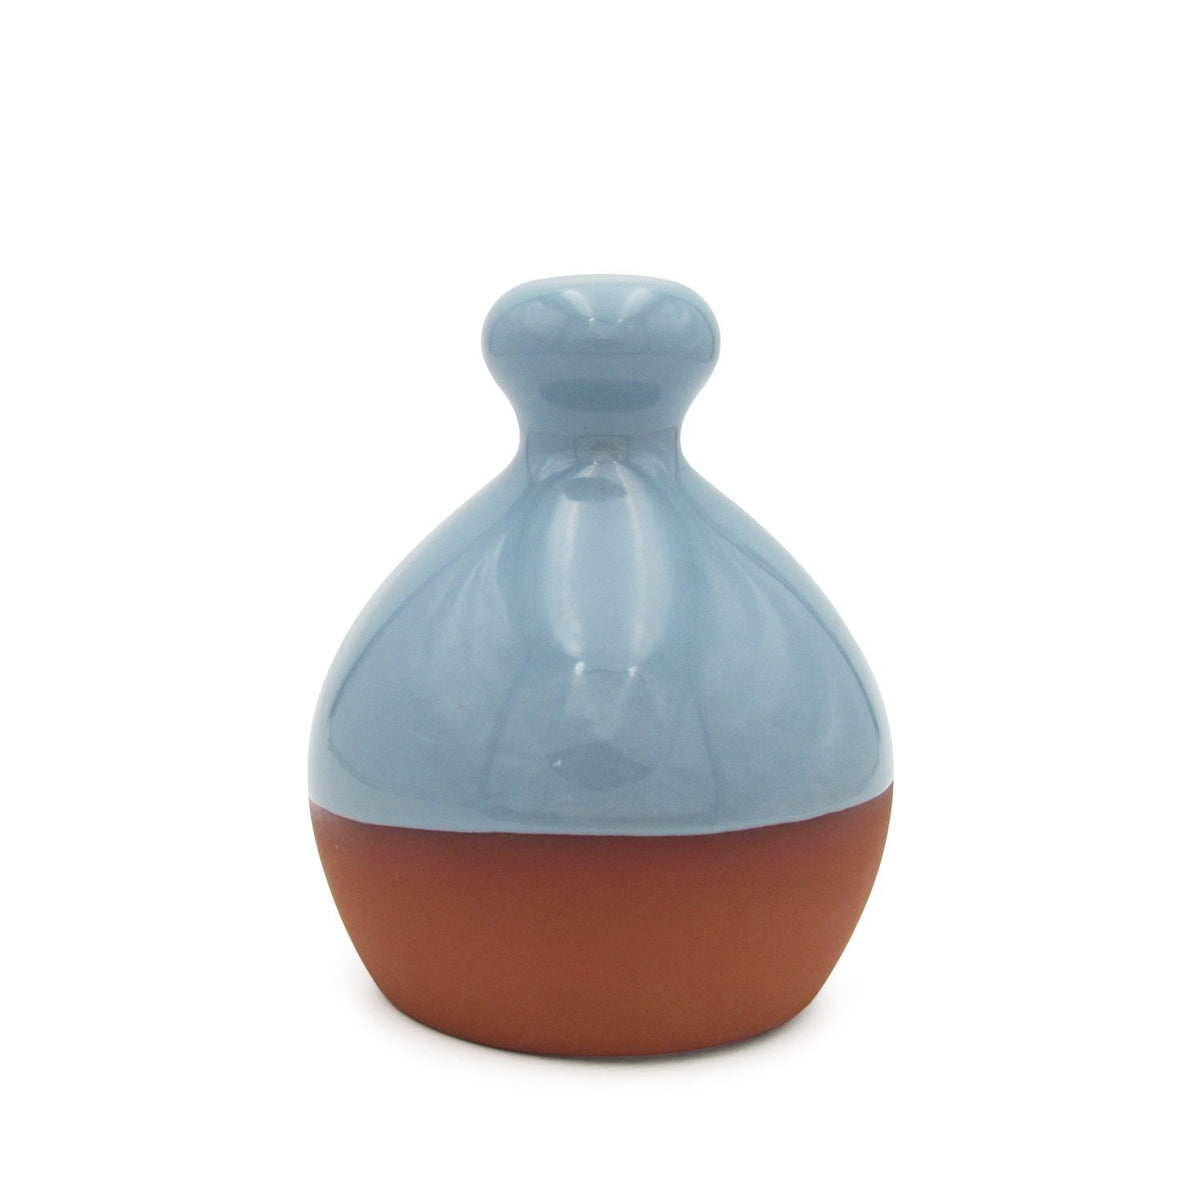 Salt Piglet - Blue Glaze Terracotta